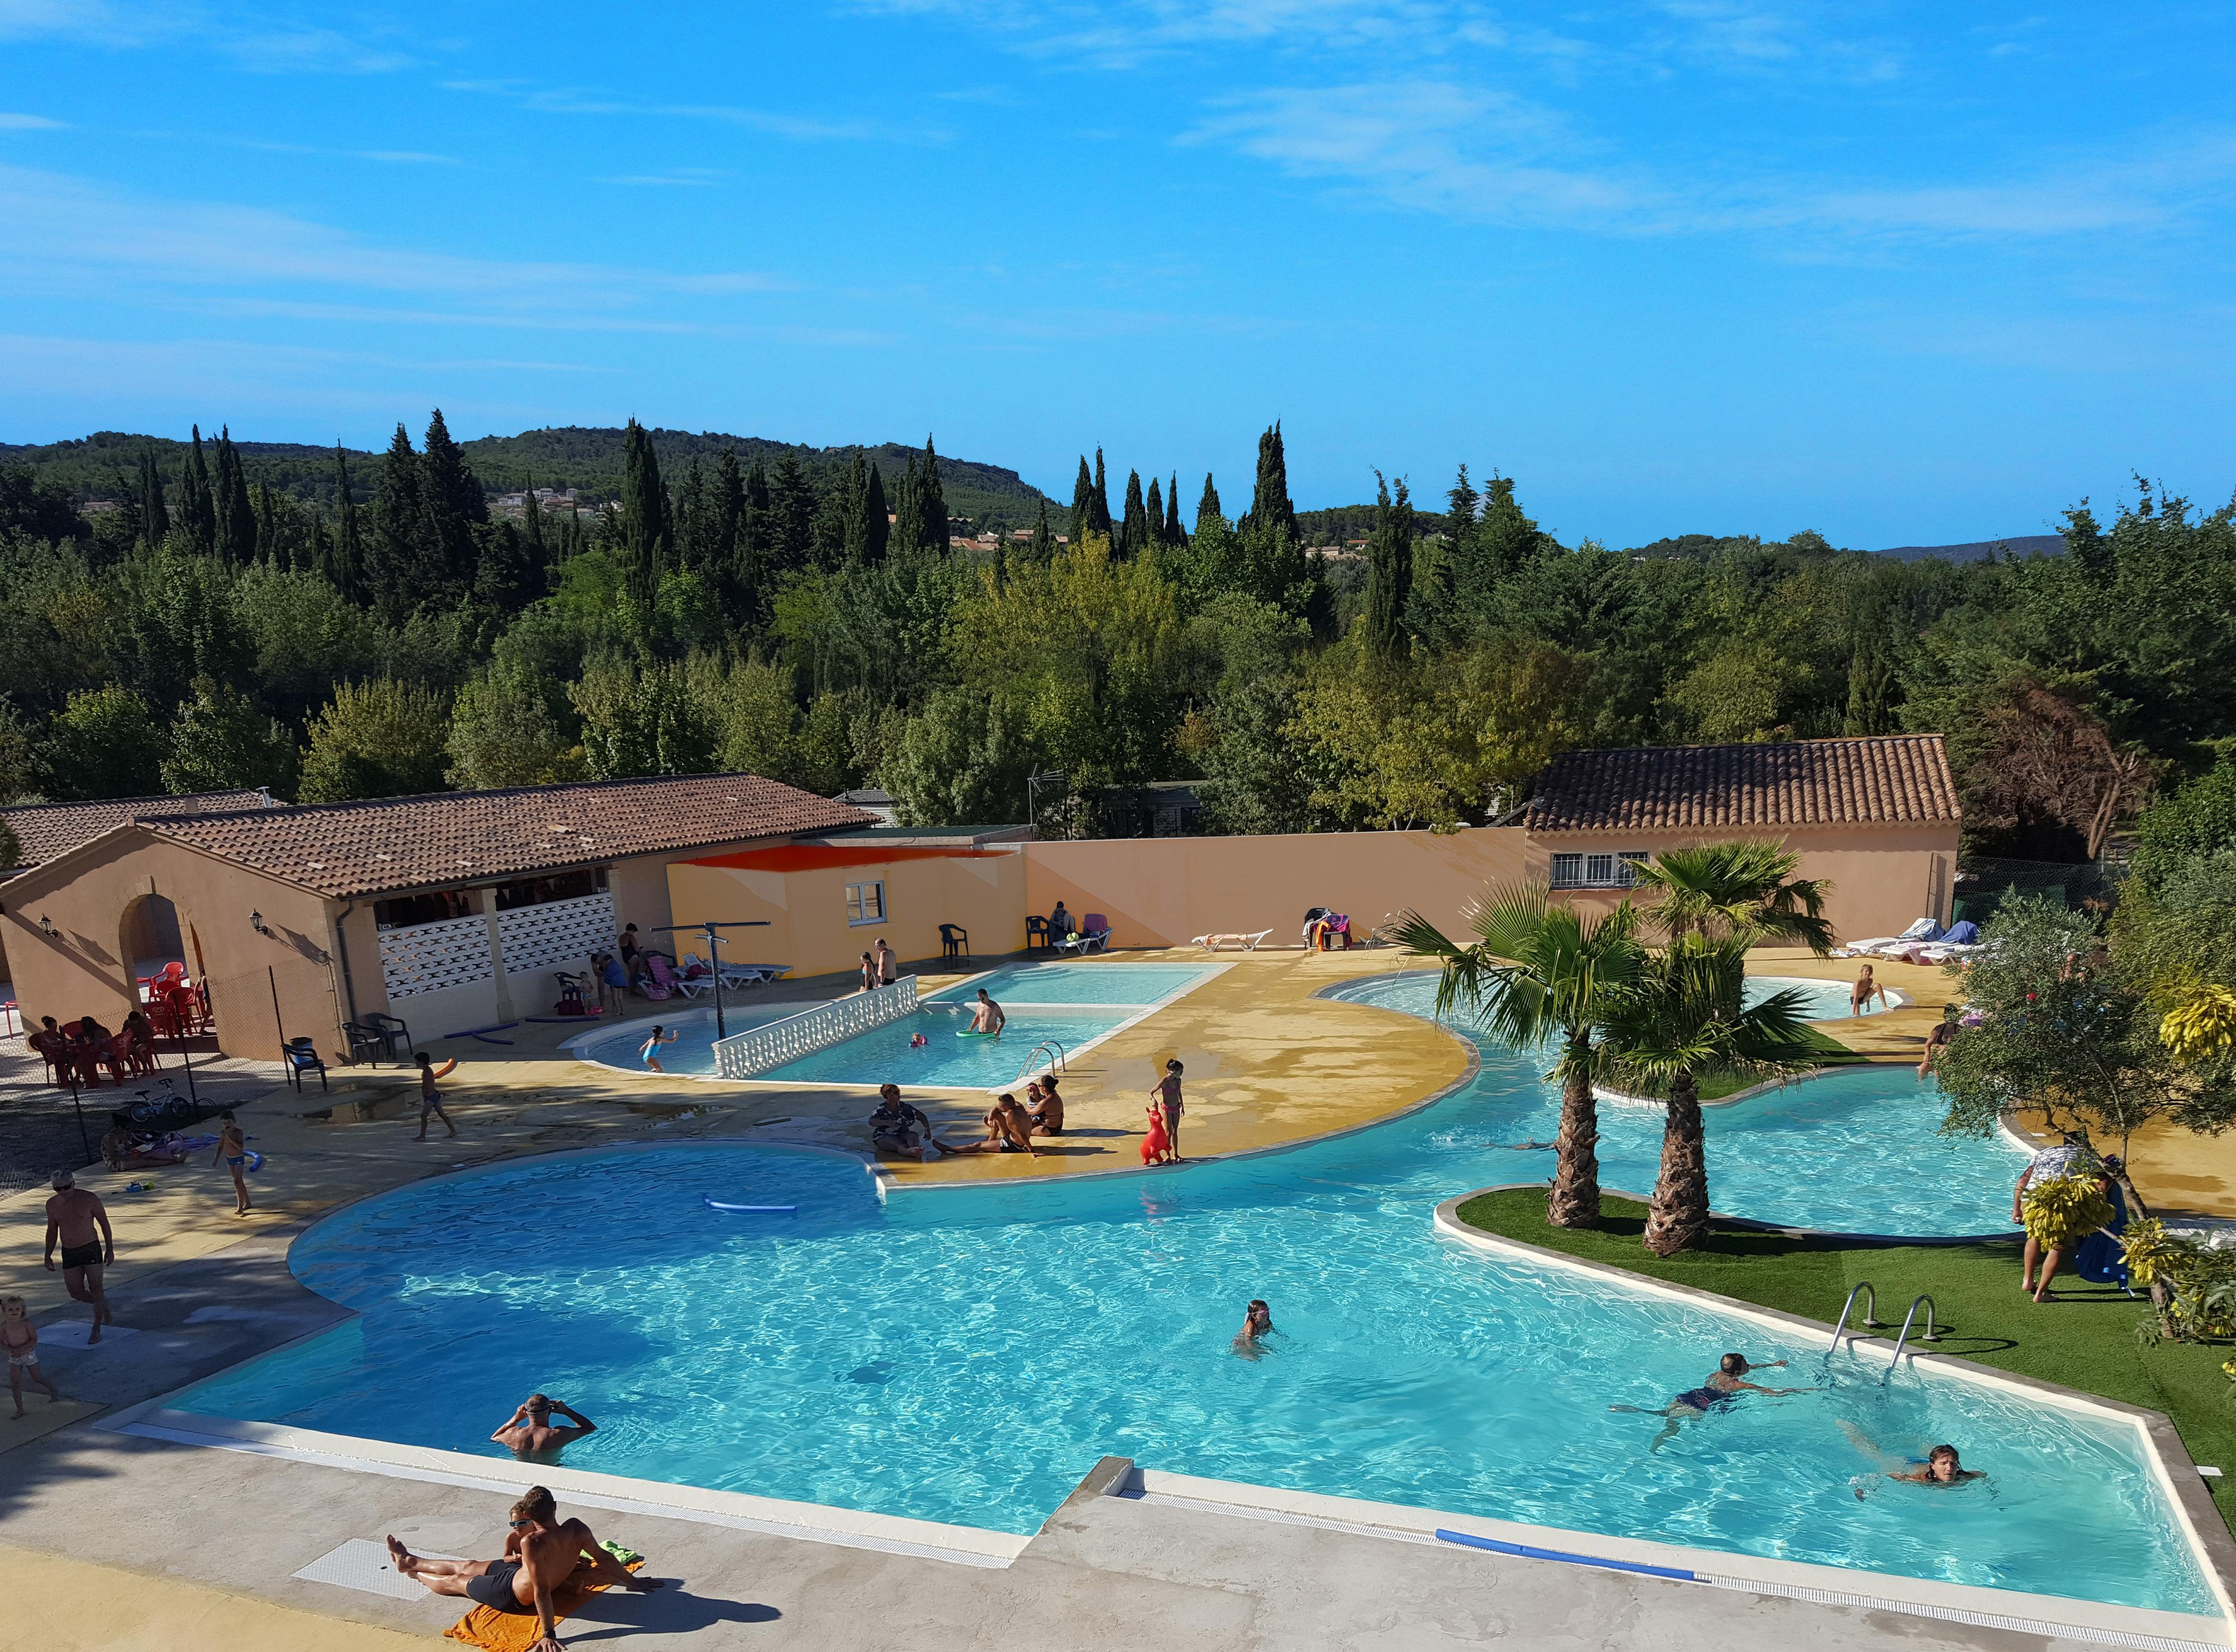 Establishment Camping Le Dolium - Laudun